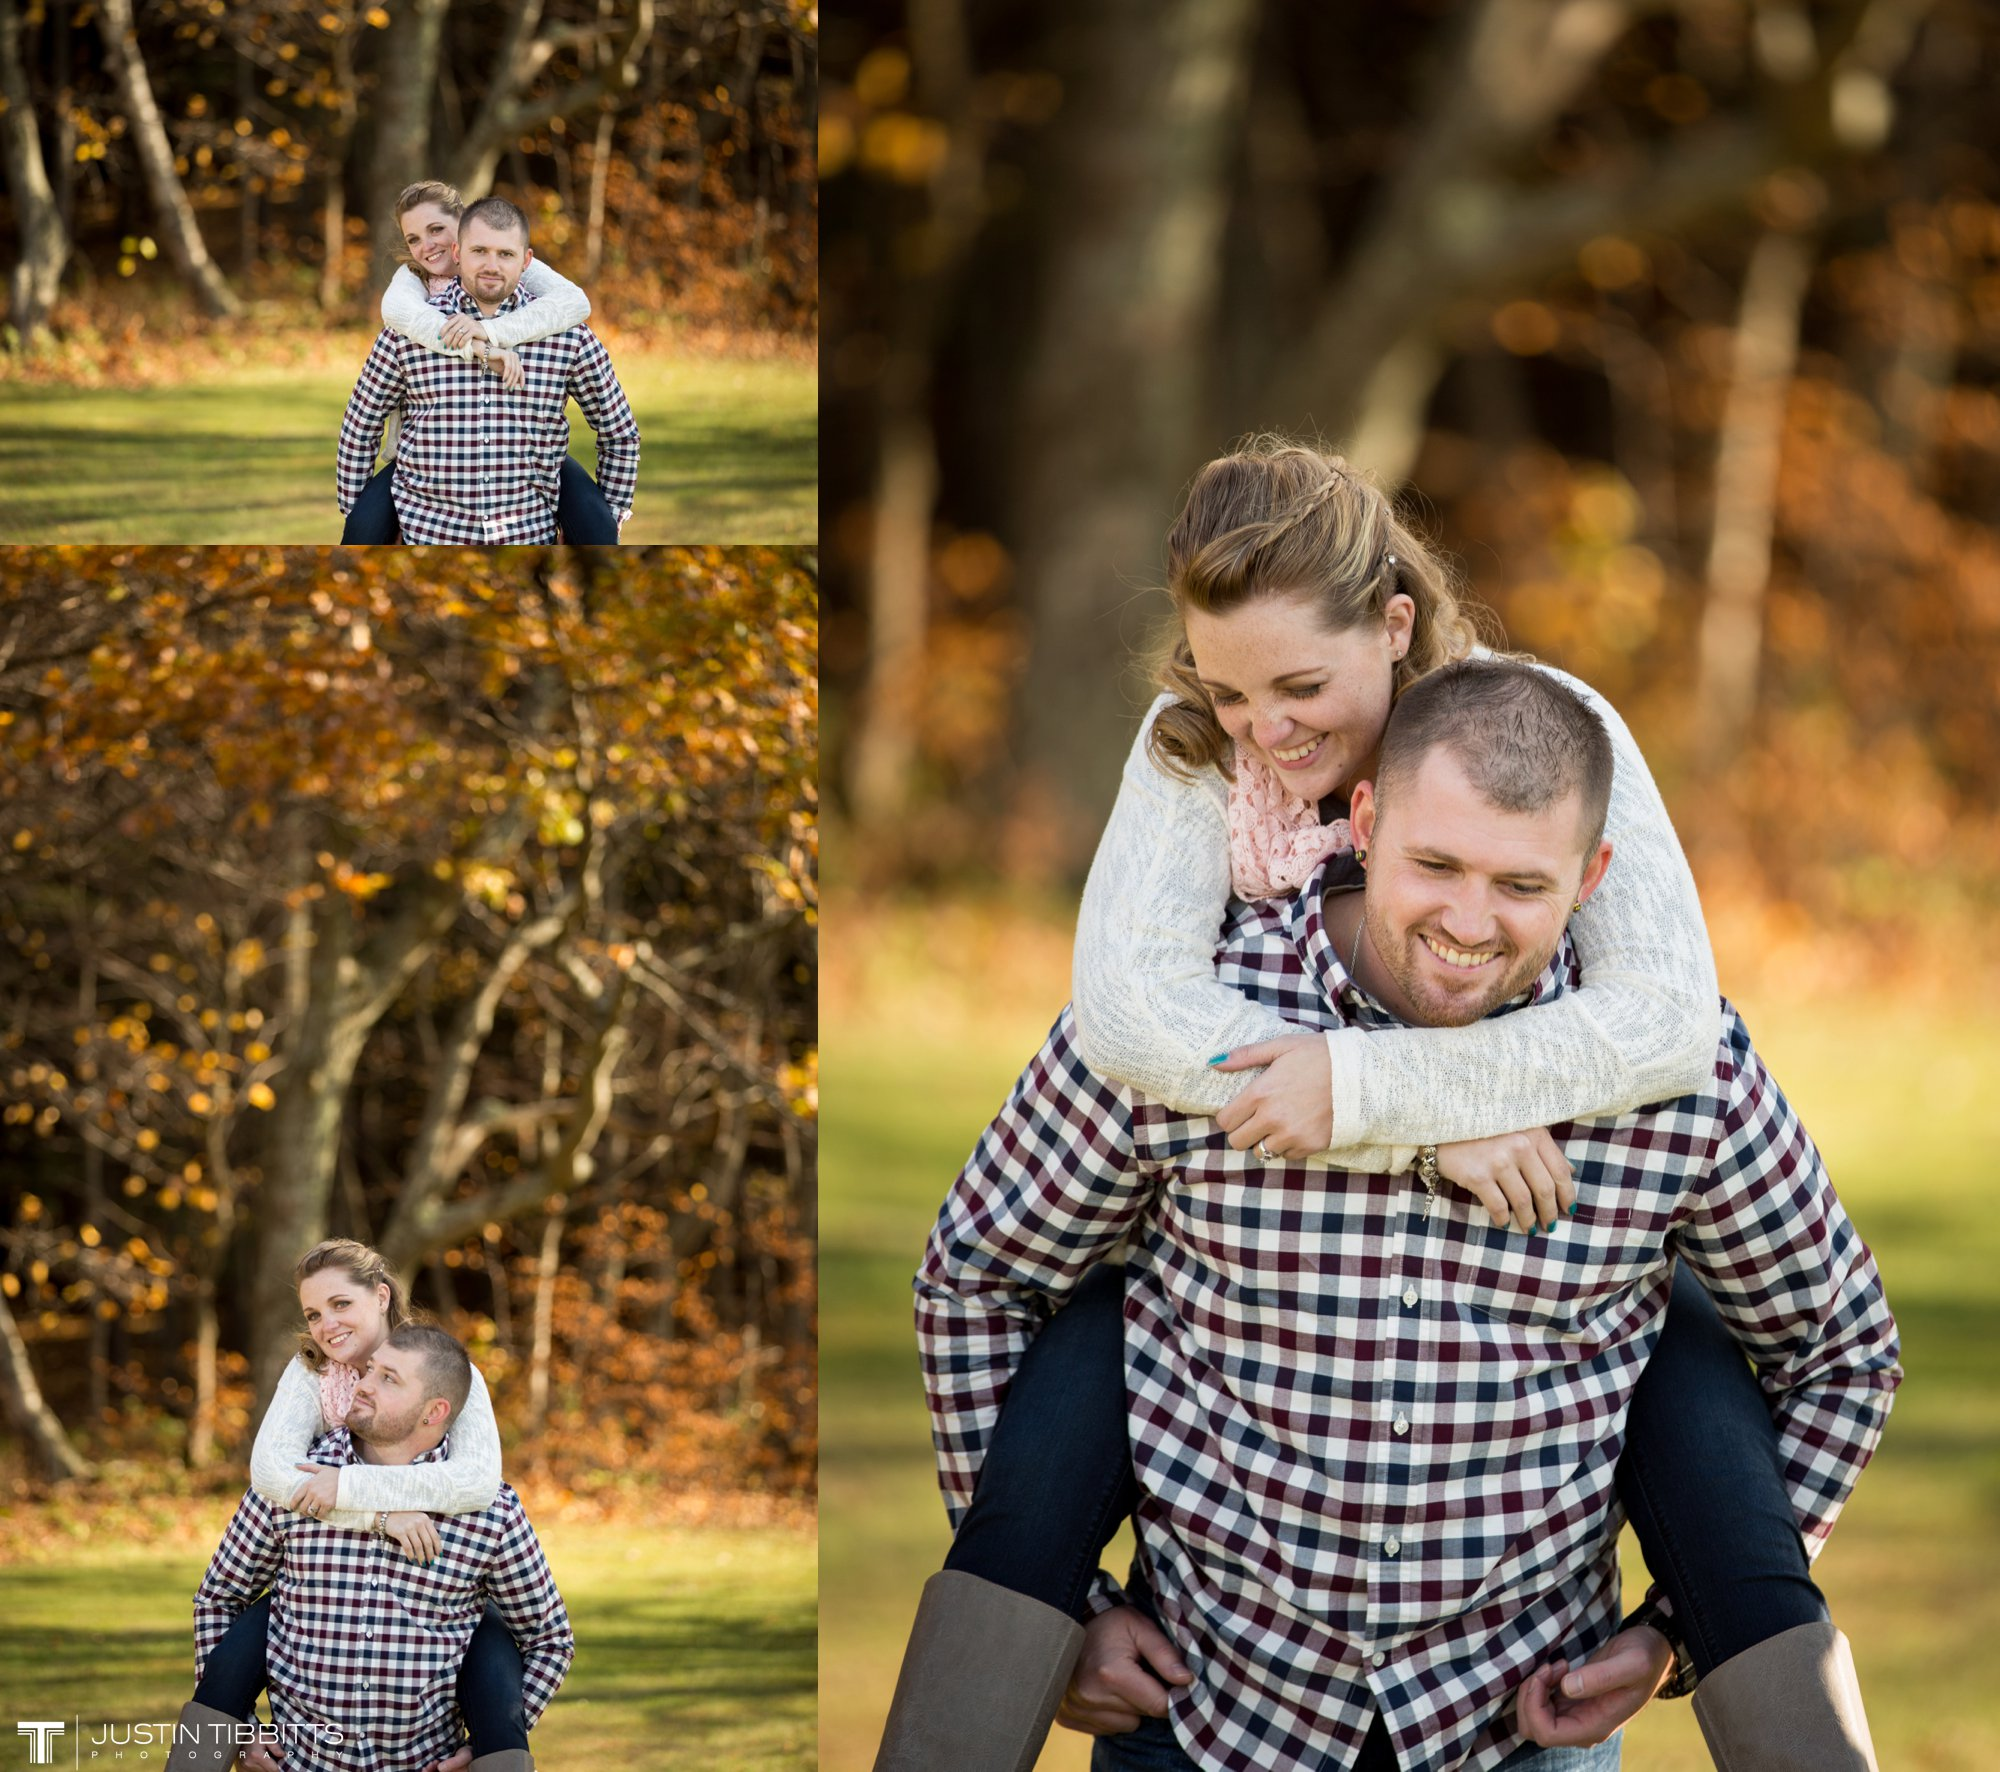 Justin Tibbitts Photography Ashlee and Steves Thatcher Park, New York Engagement Shoot-58